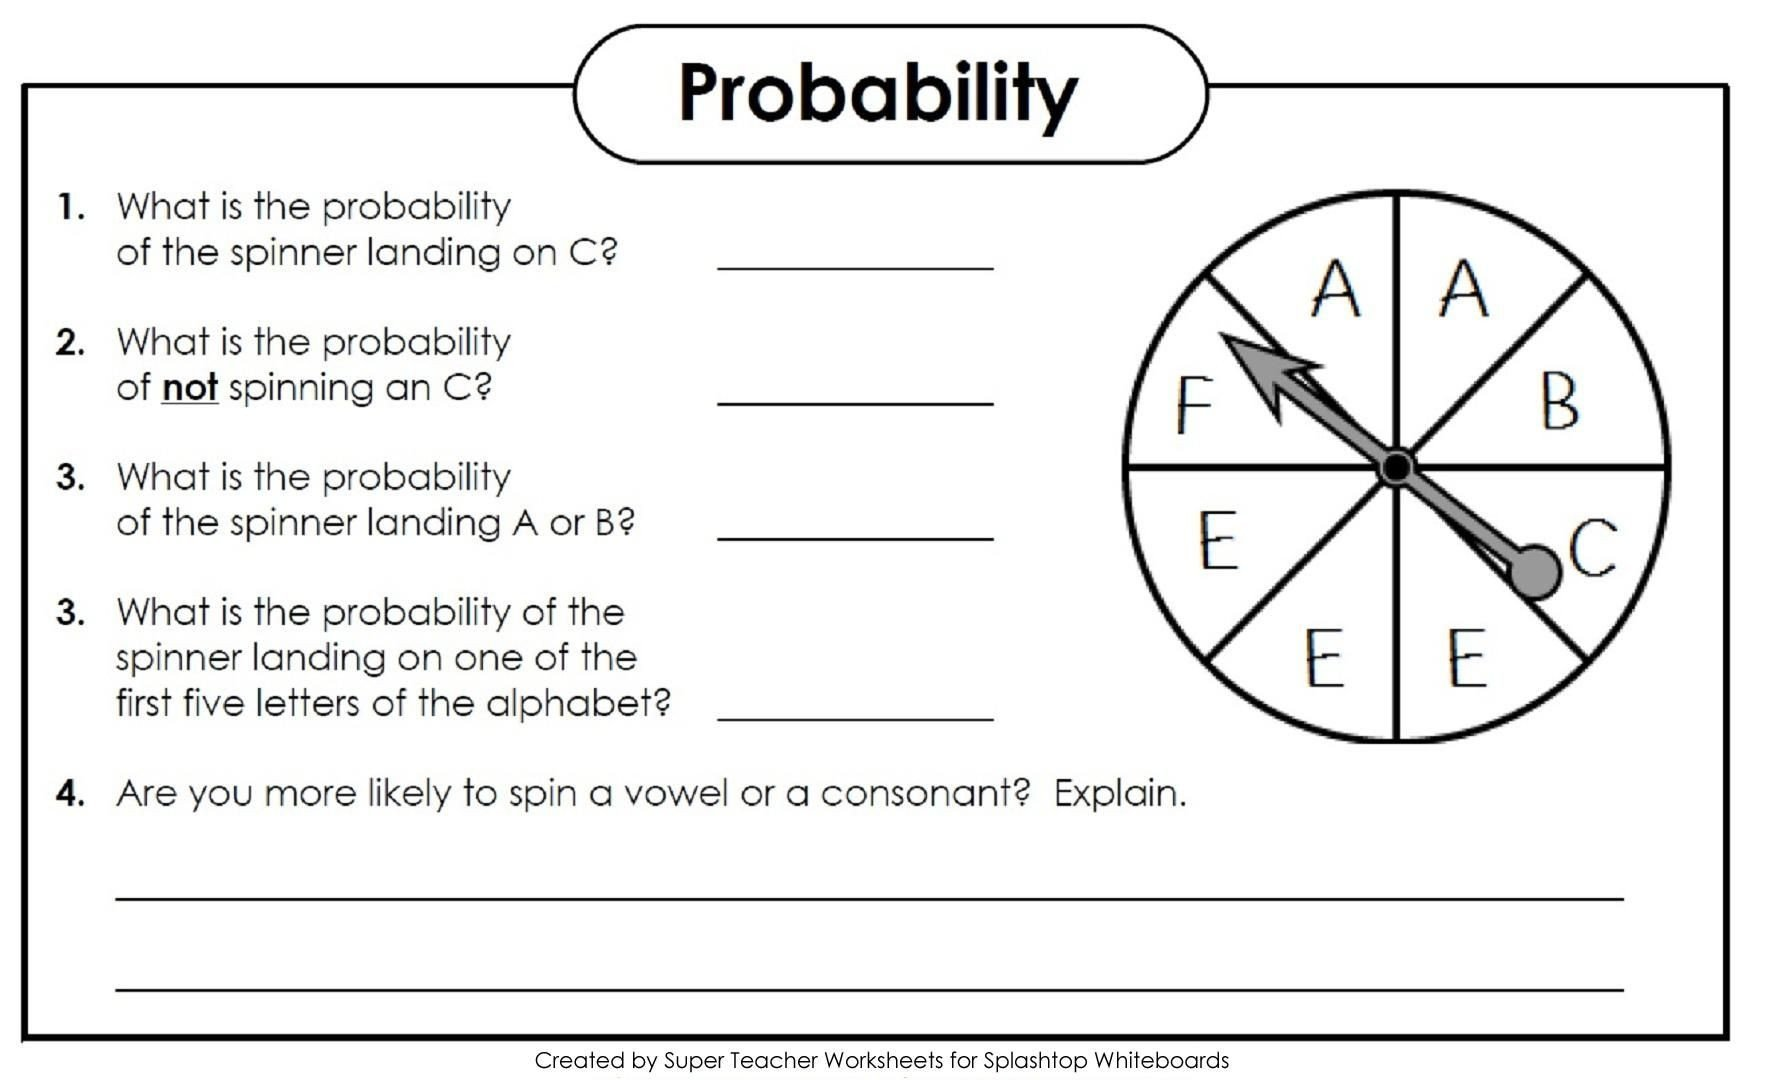 Probability Worksheet 5th Grade 15 High School Geometrie Arbeitsblätter Pdf